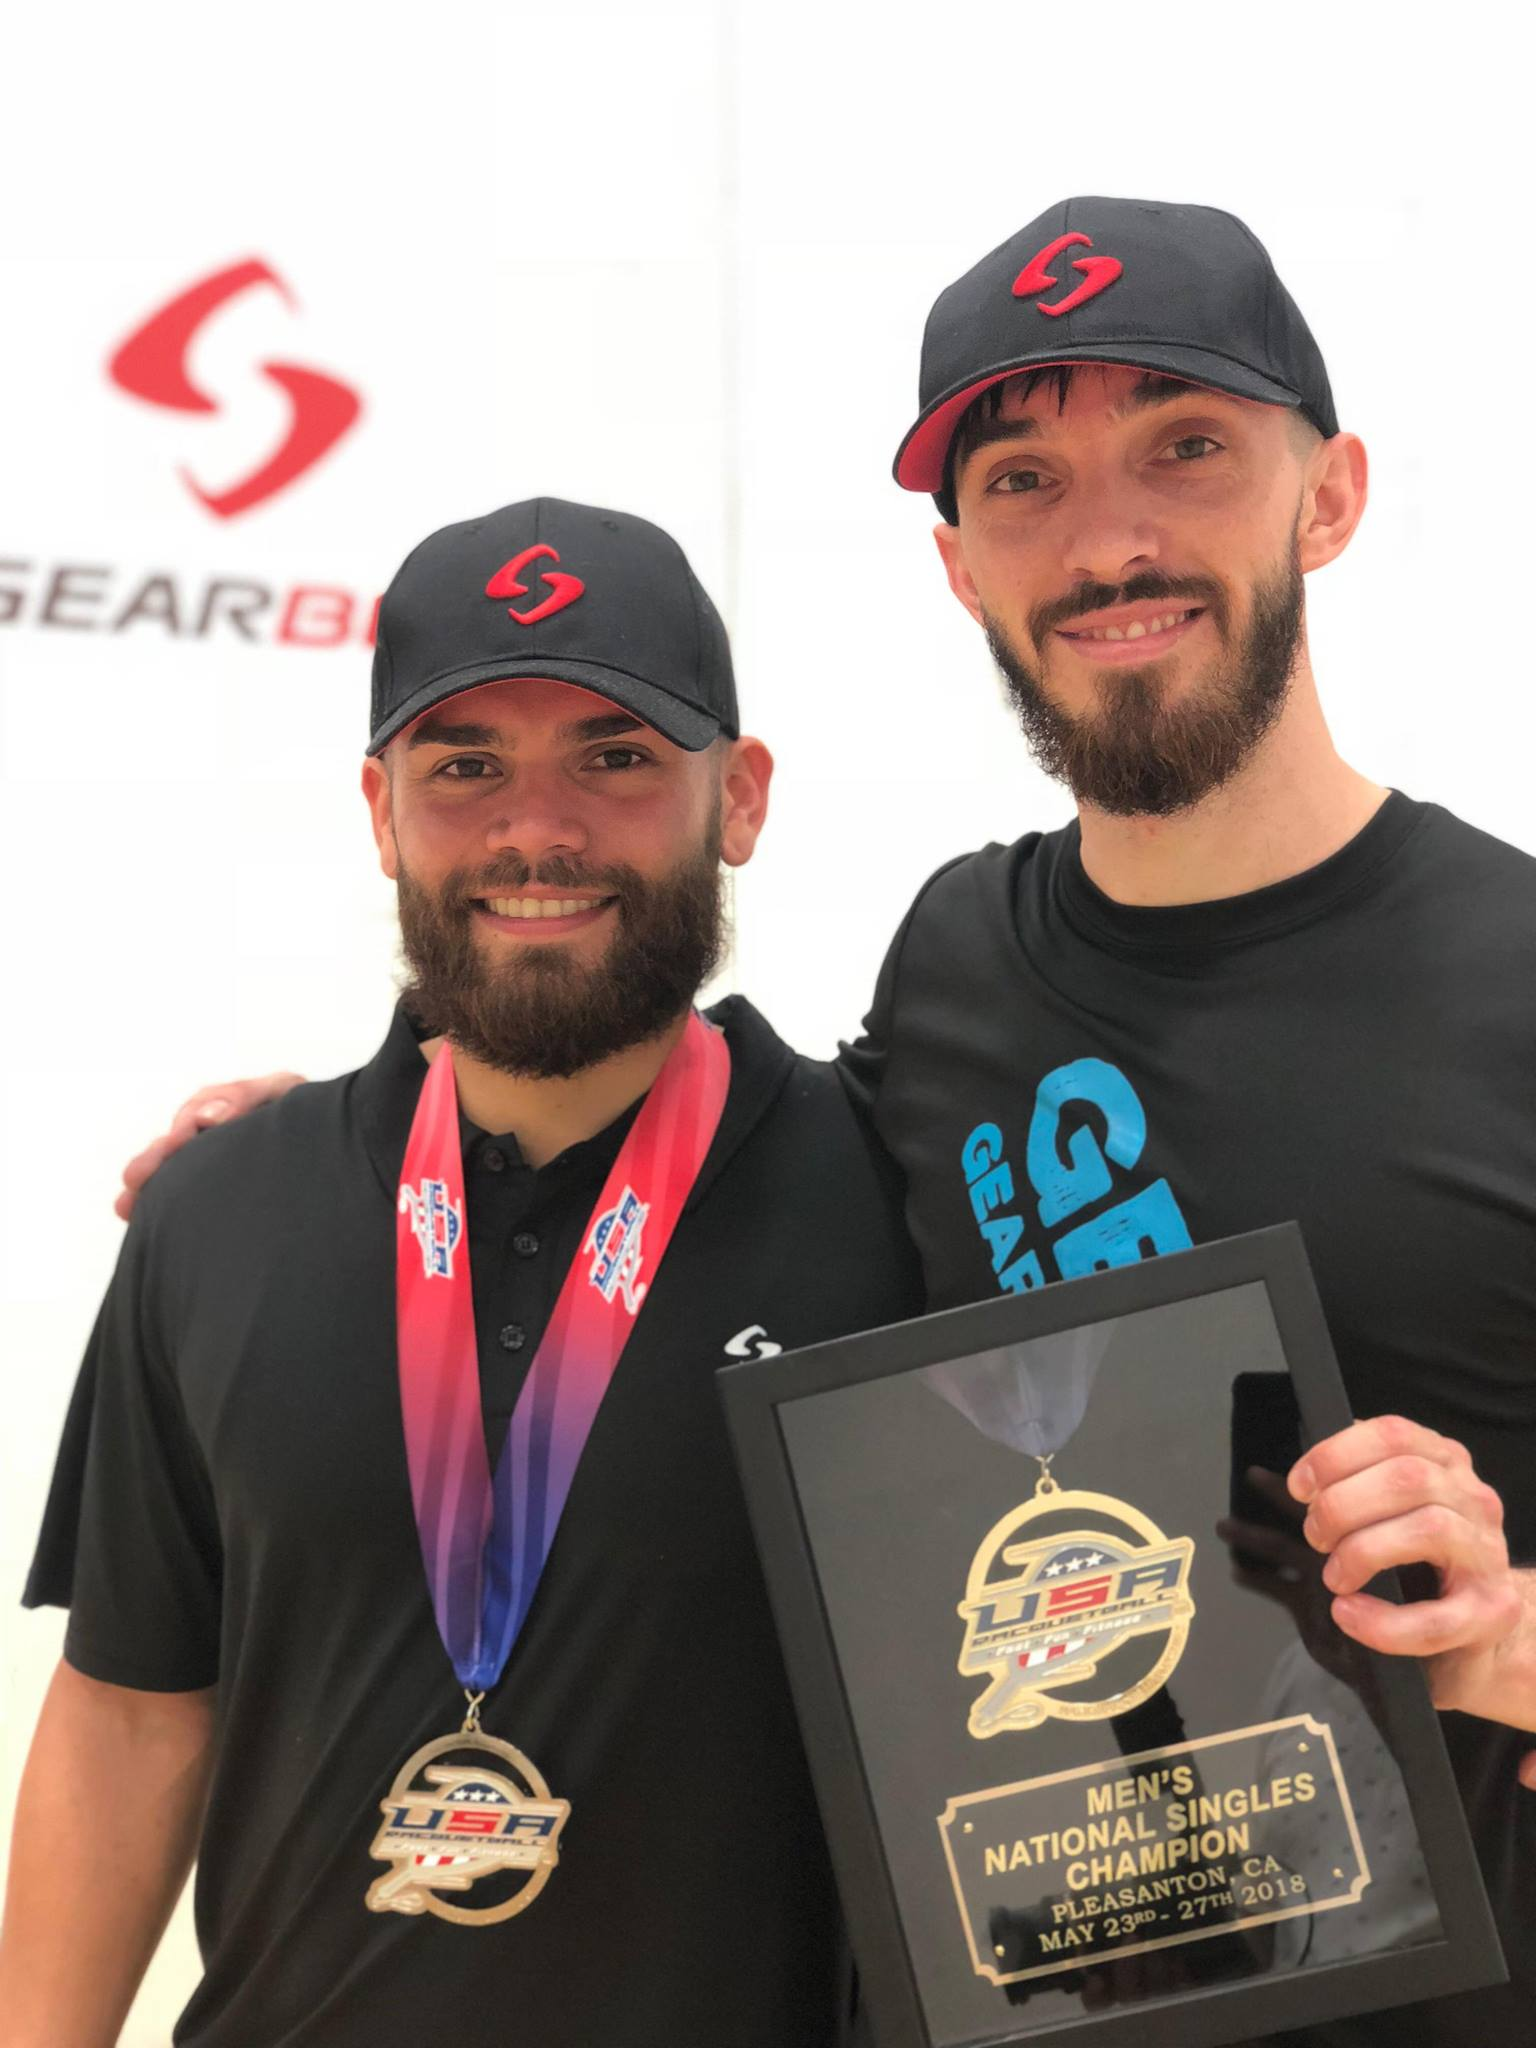 2018 National Singles Racquetball Champion